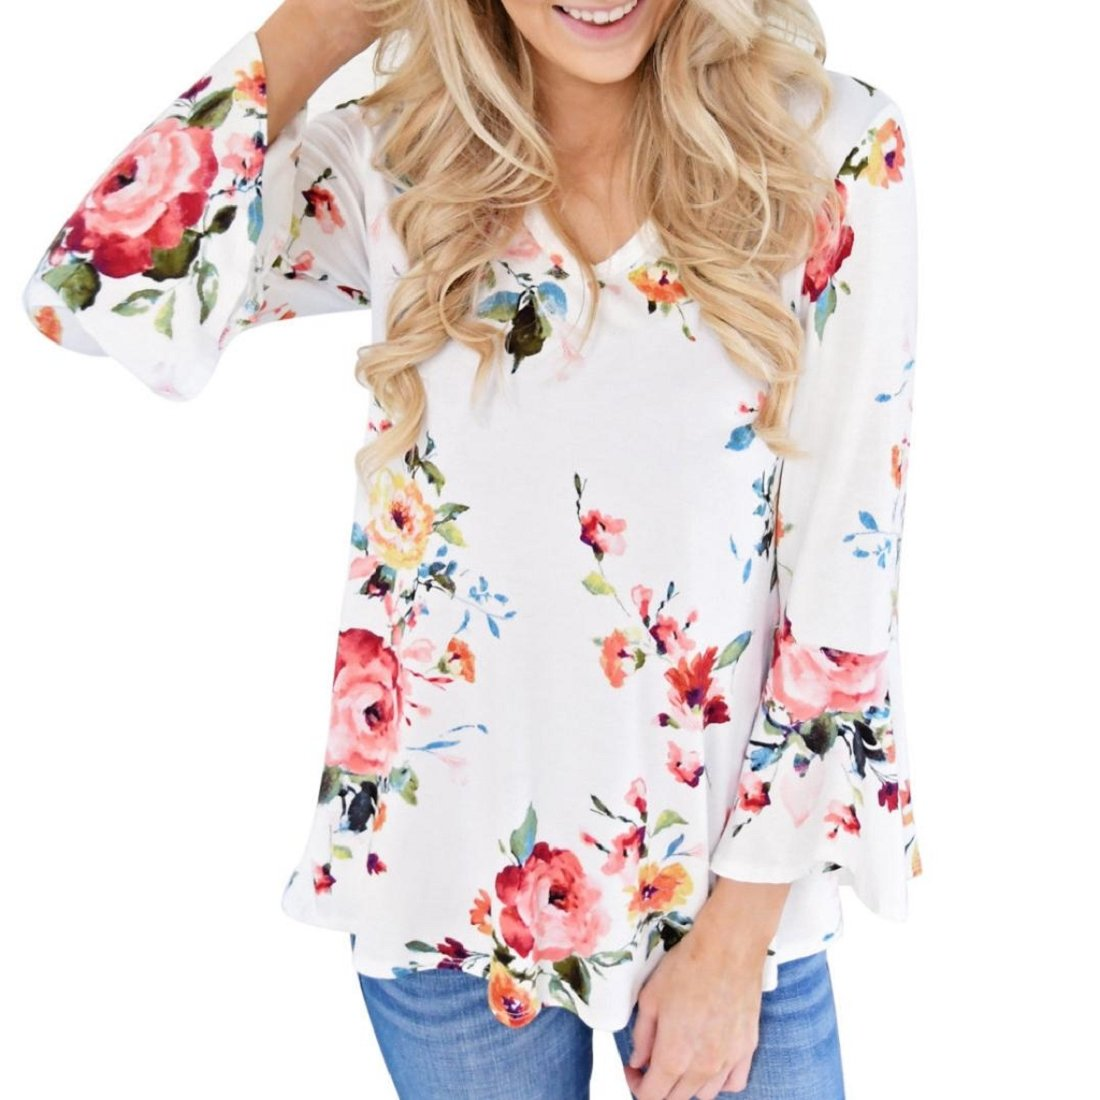 Women's Summer Plus Size Floral V-Neck Camisole Sleeveless Loose Tops Blouse XWJ520